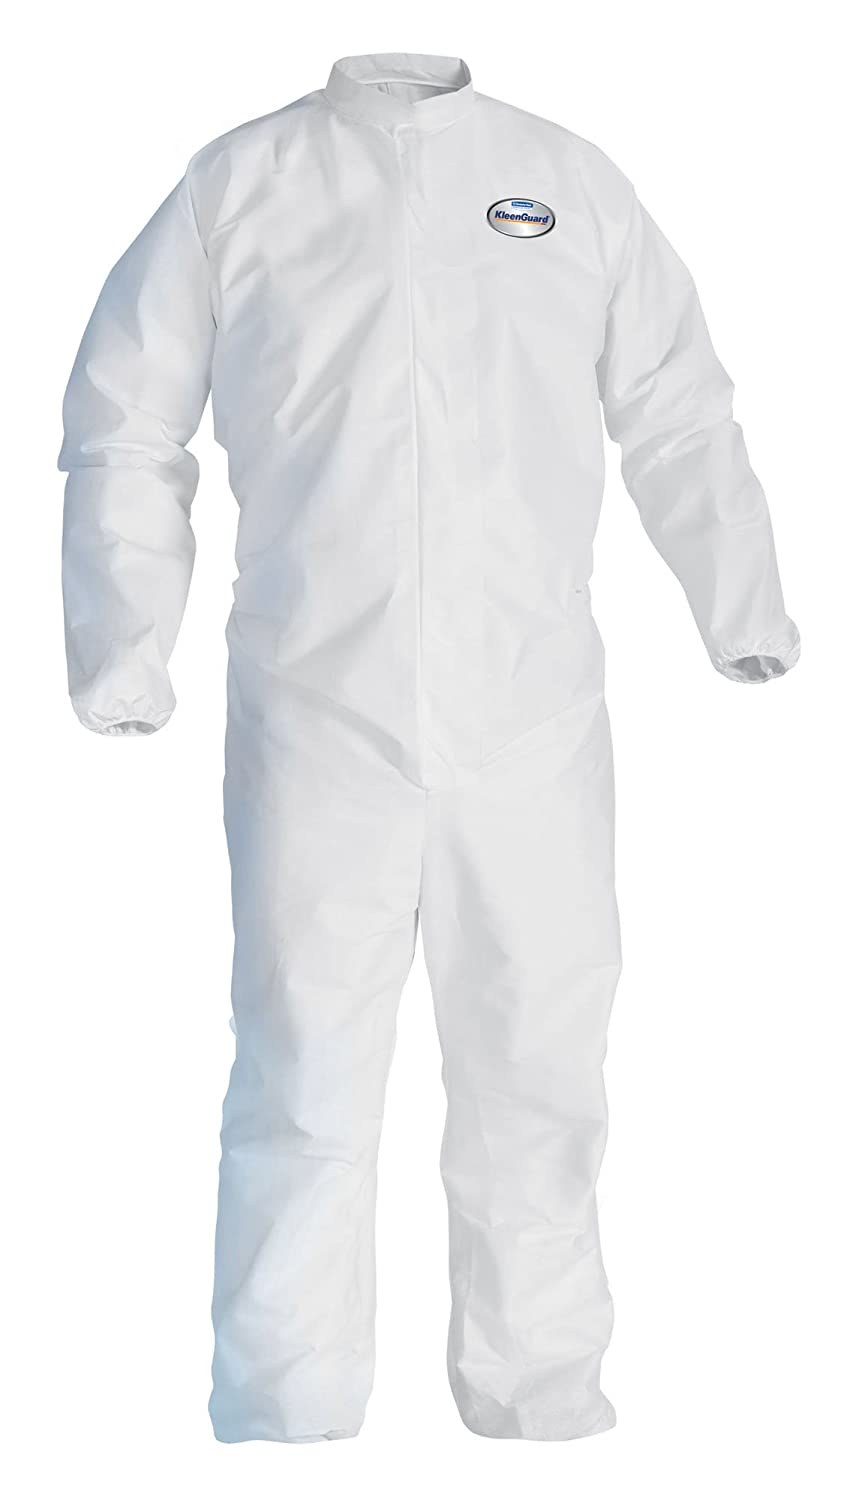 Kimberly-Clark KleenGuard A30 SMS Fabric Breathable Splash and Particle Protection Coverall, Disposable, Elastic Wrist (Case of 25) униформа для медперсонала a promise sms